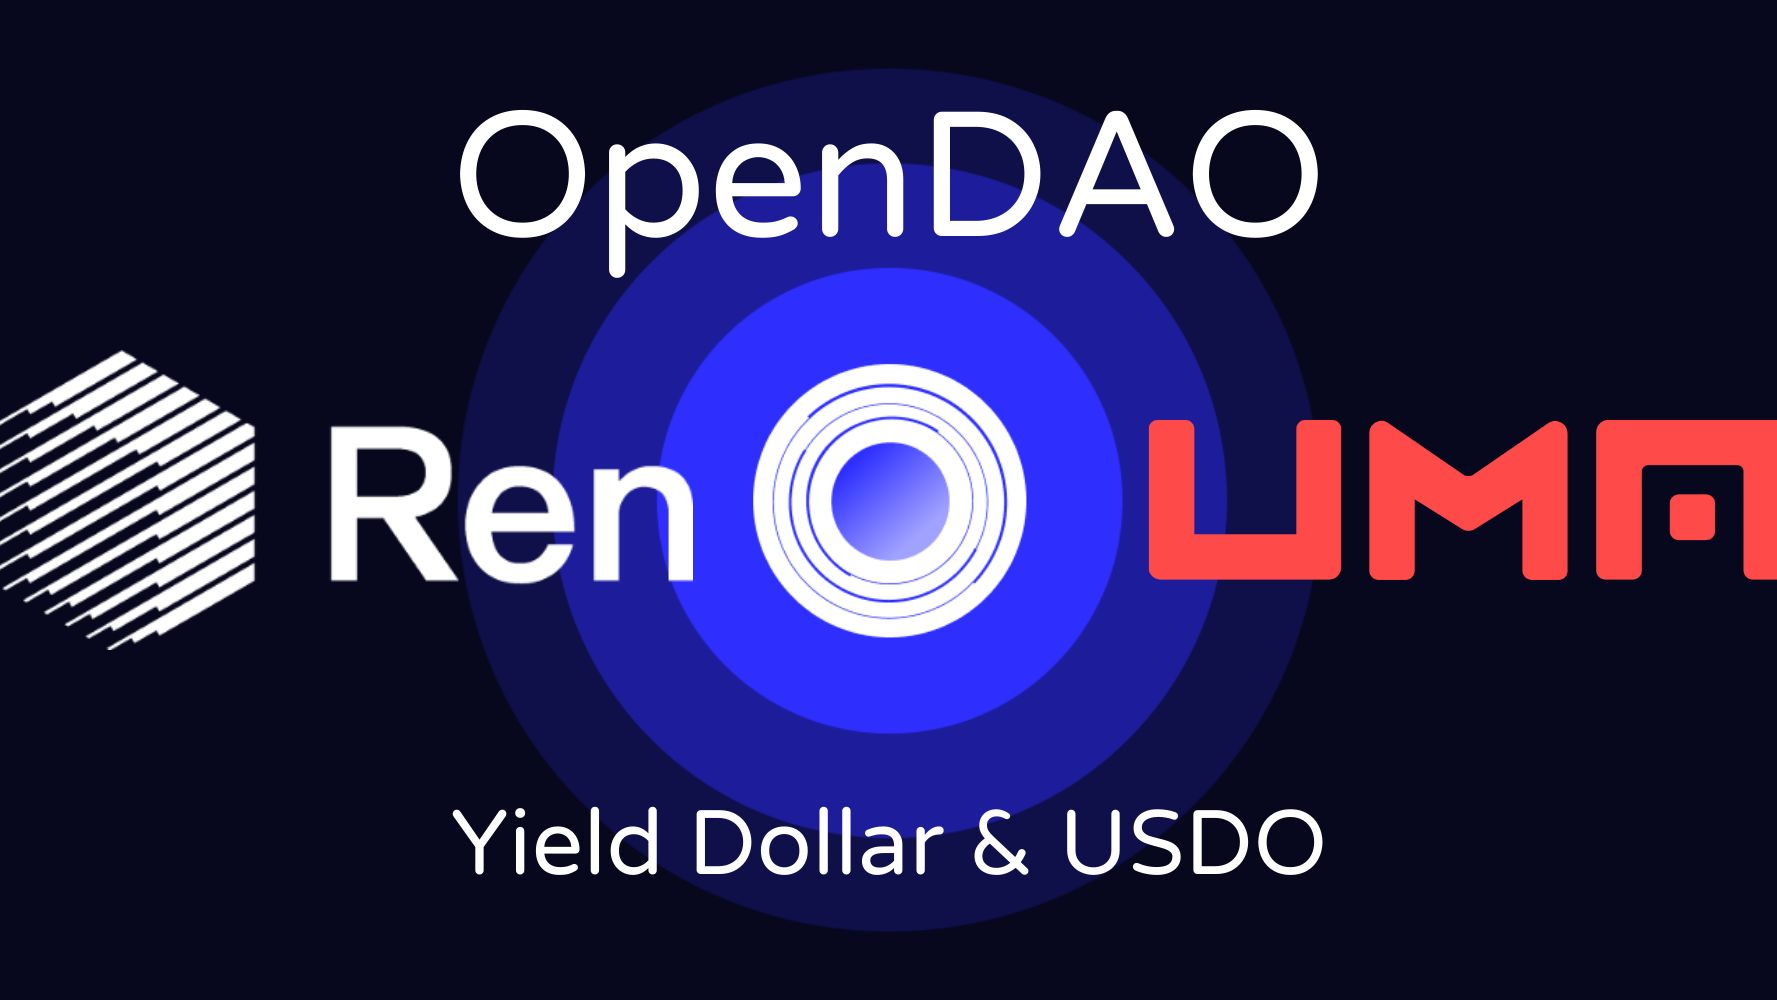 OpenDAO Develops New Return Buck User Interface in addition to UMA, Approves BTC as Security 1